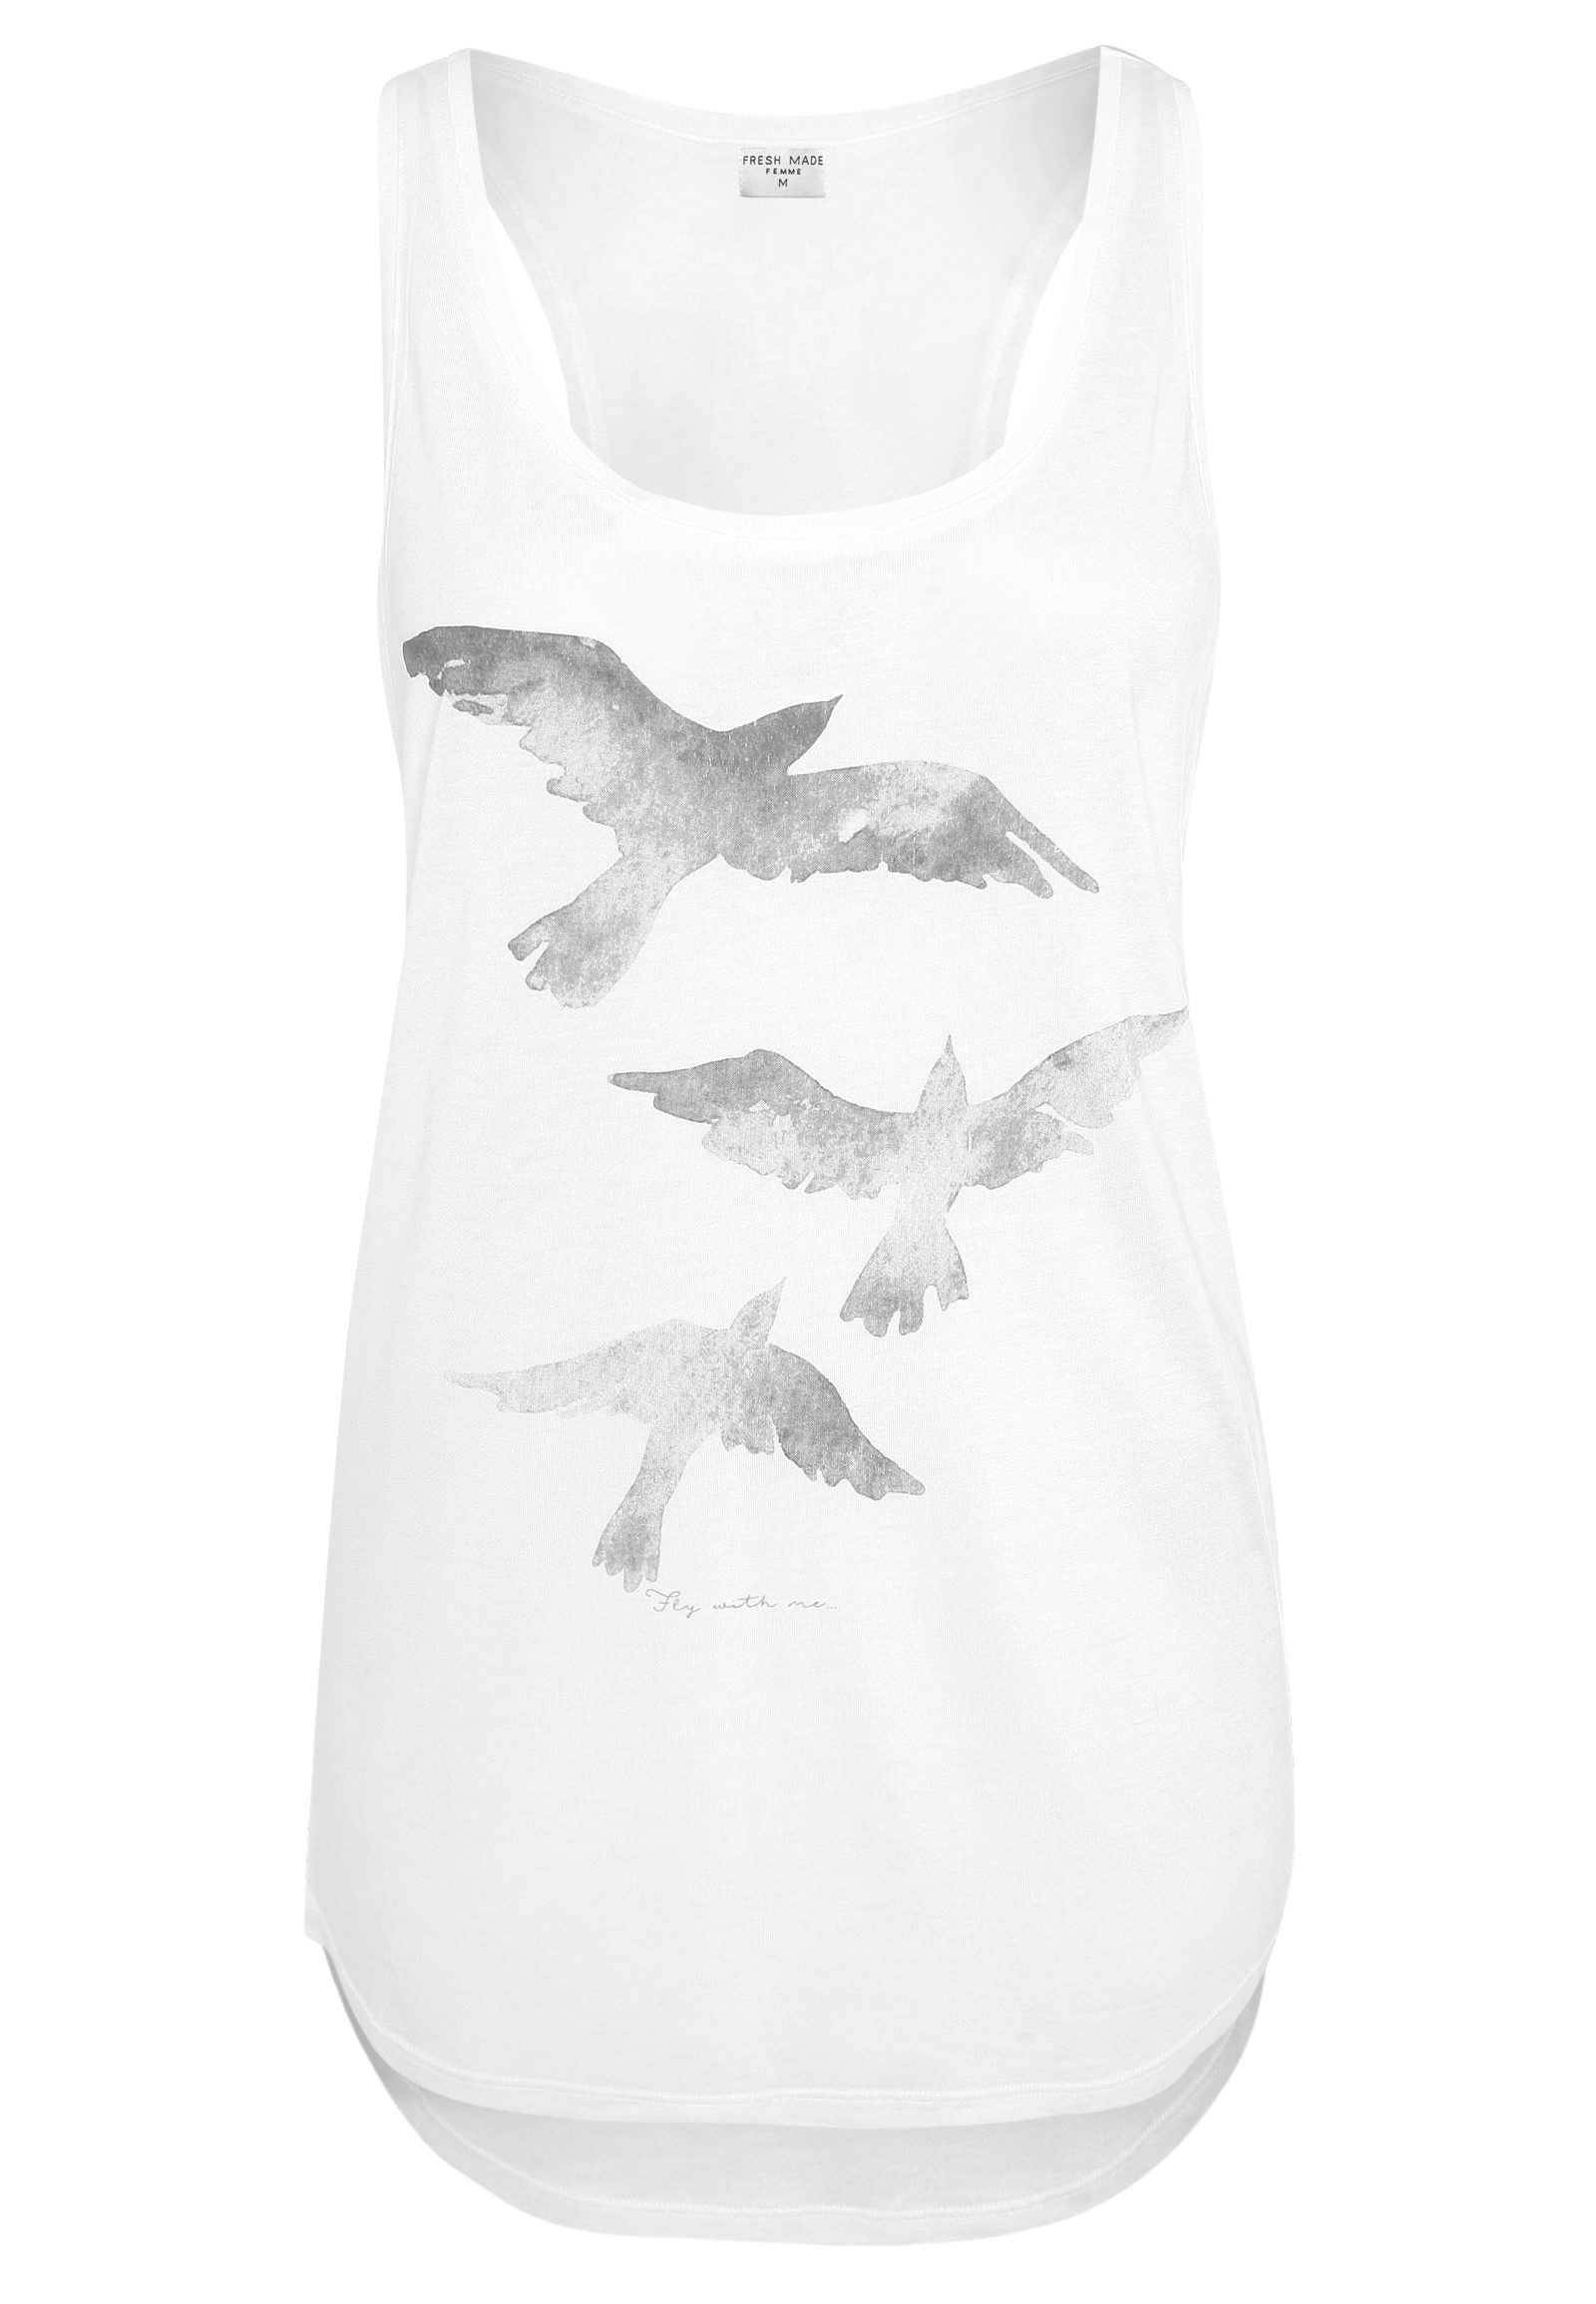 Damen Top mit Vogelprint